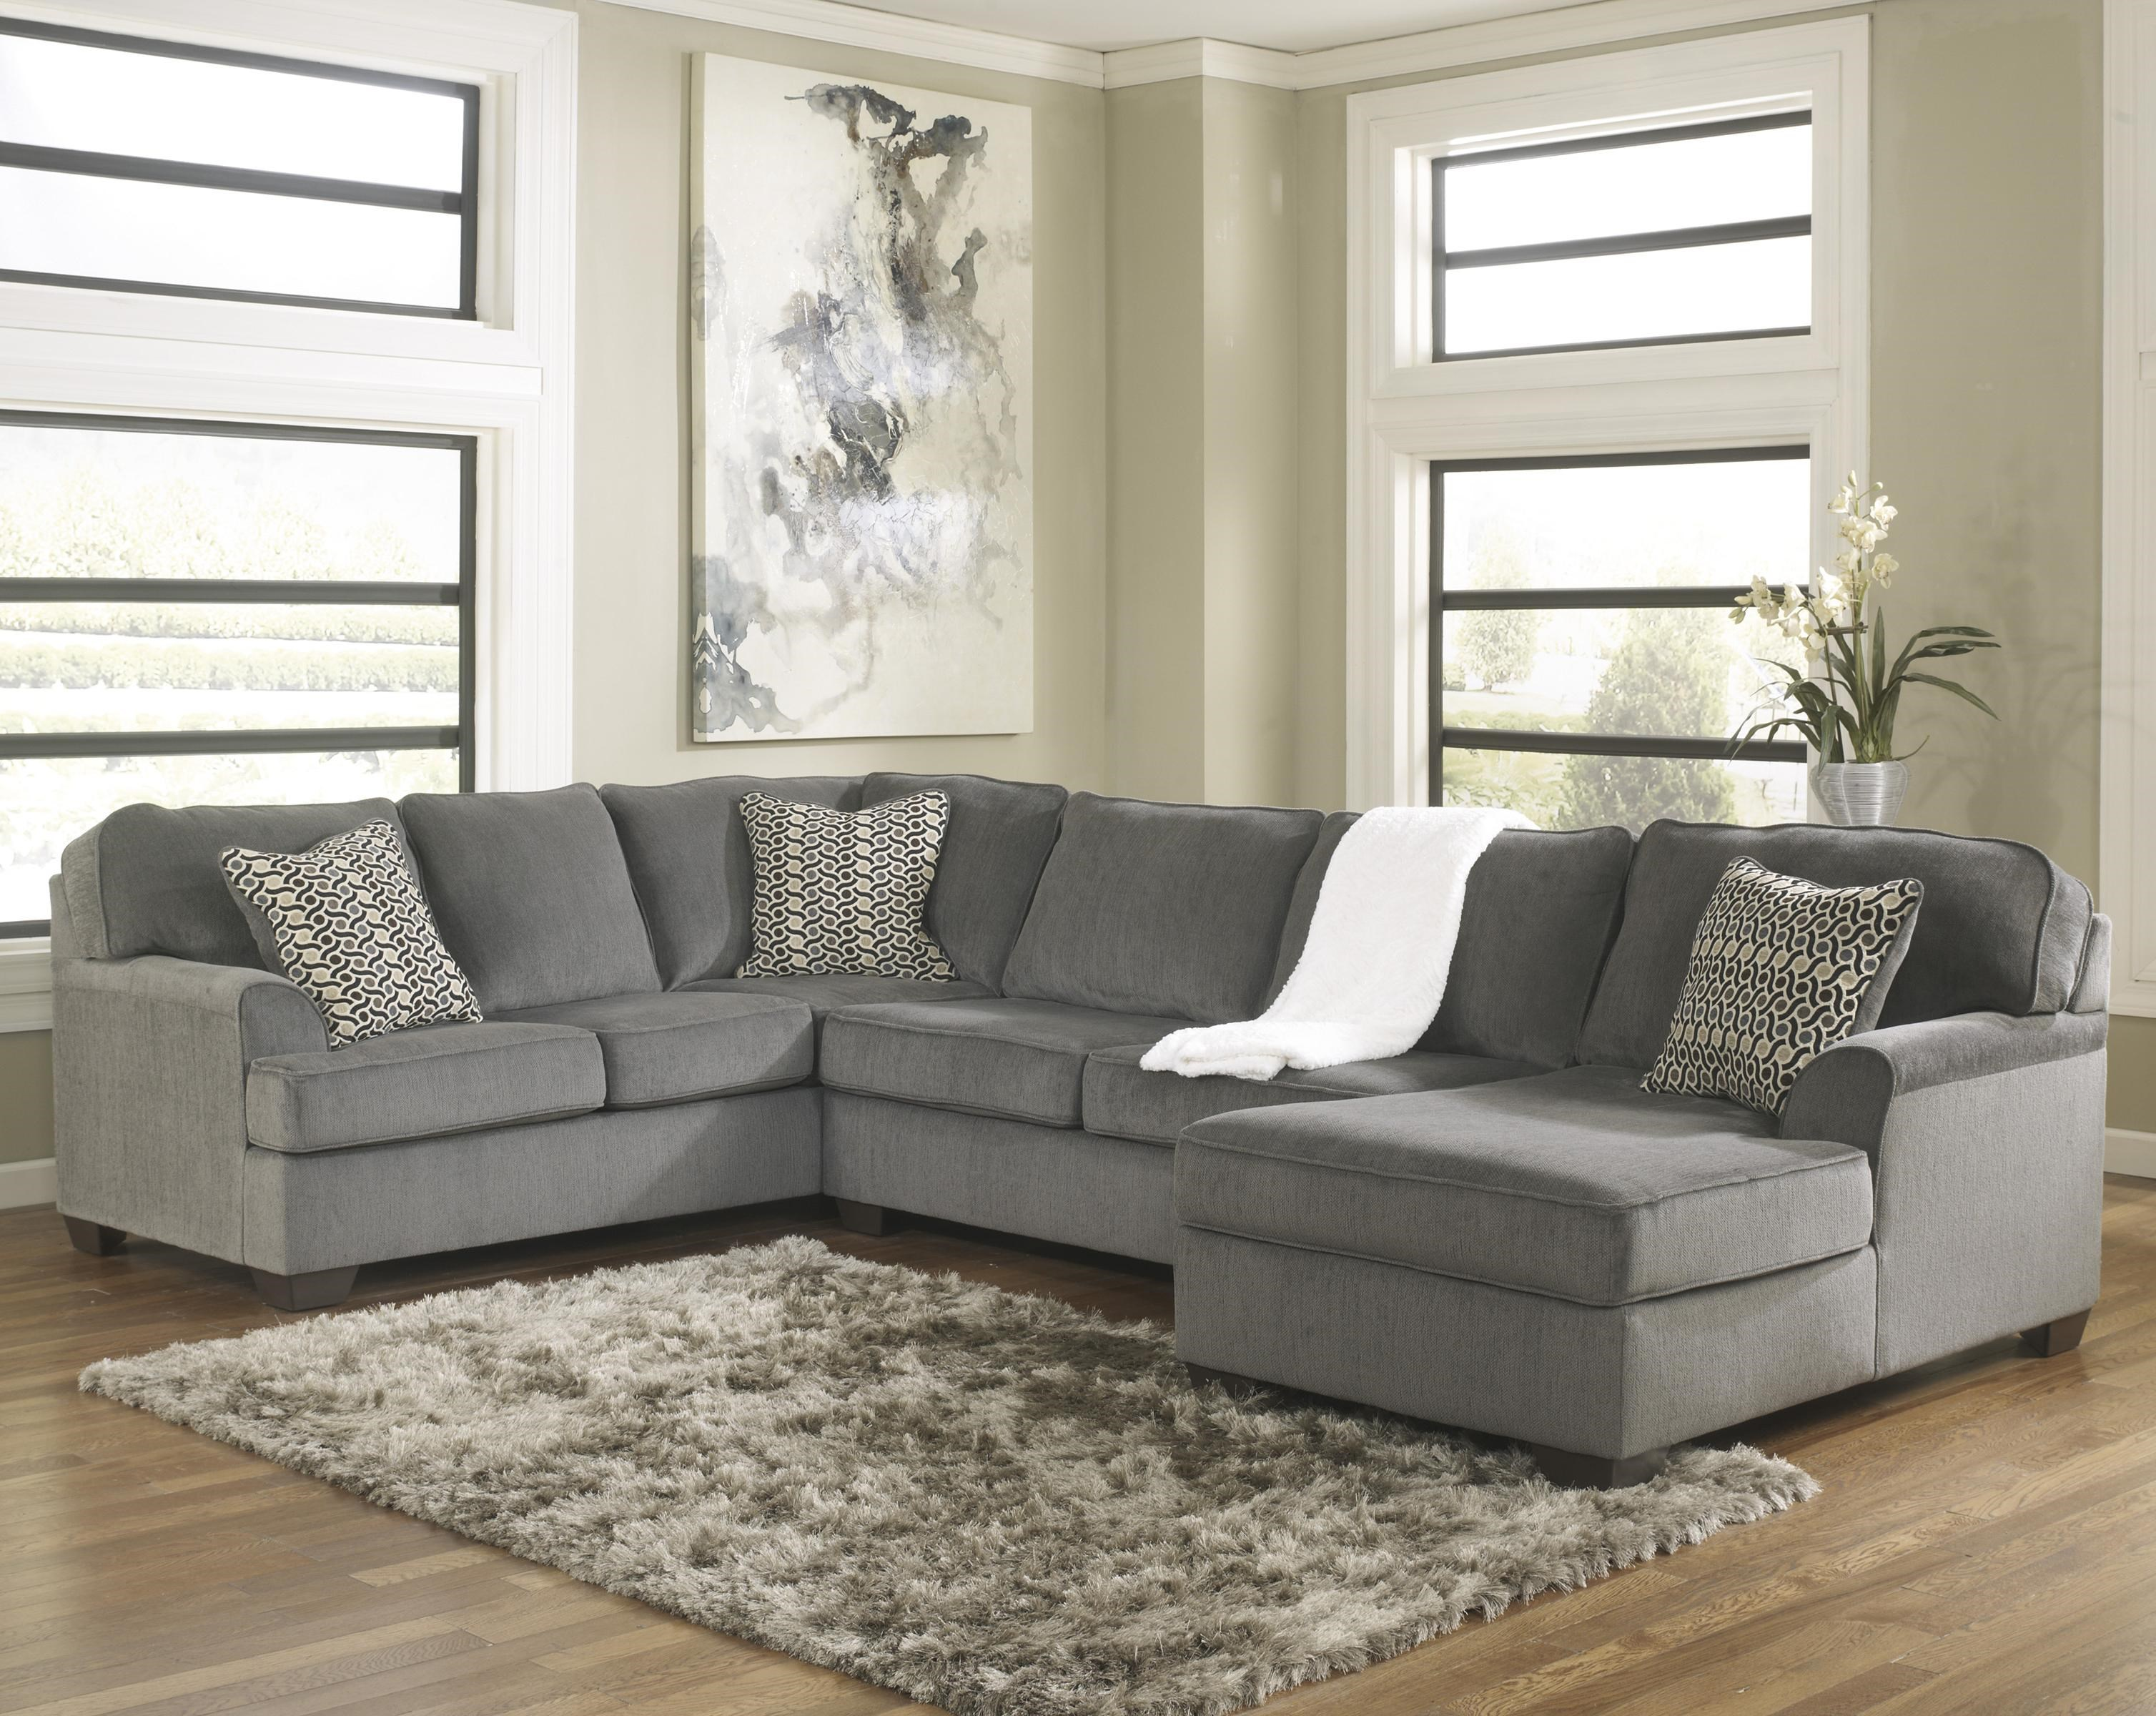 High Quality Ashley Furniture Loric   SmokeContemporary 3 Piece Sectional With Chaise ...